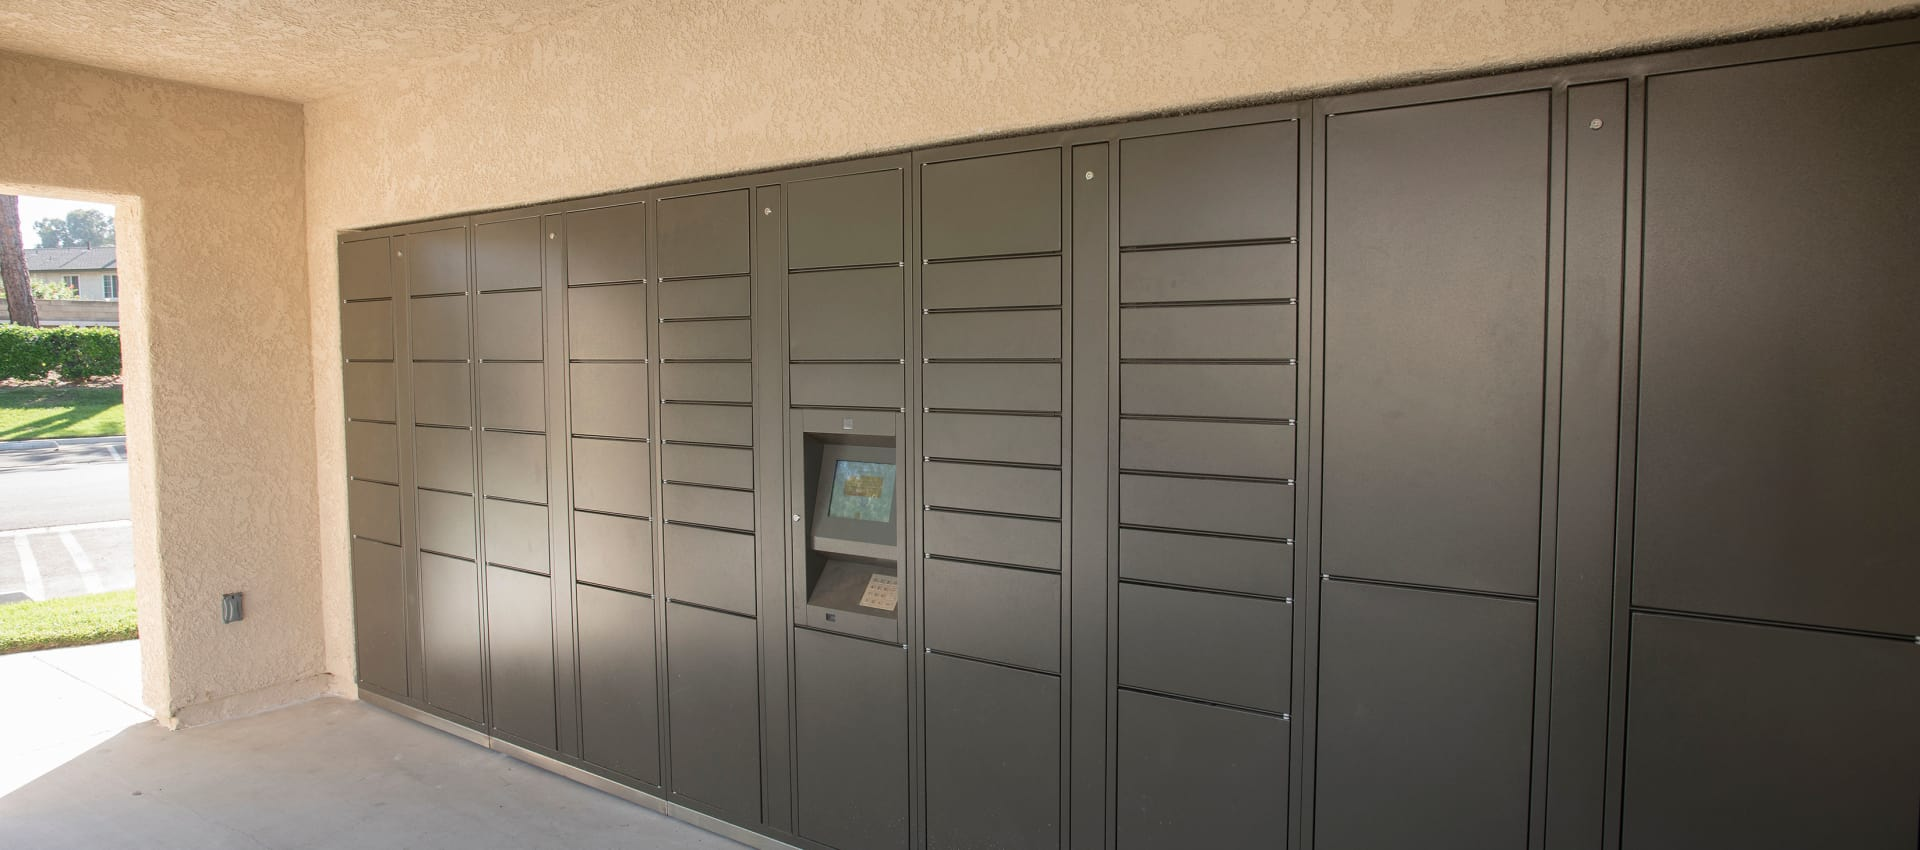 Parcel Pending Package Locker at Shadow Ridge Apartment Homes in Simi Valley